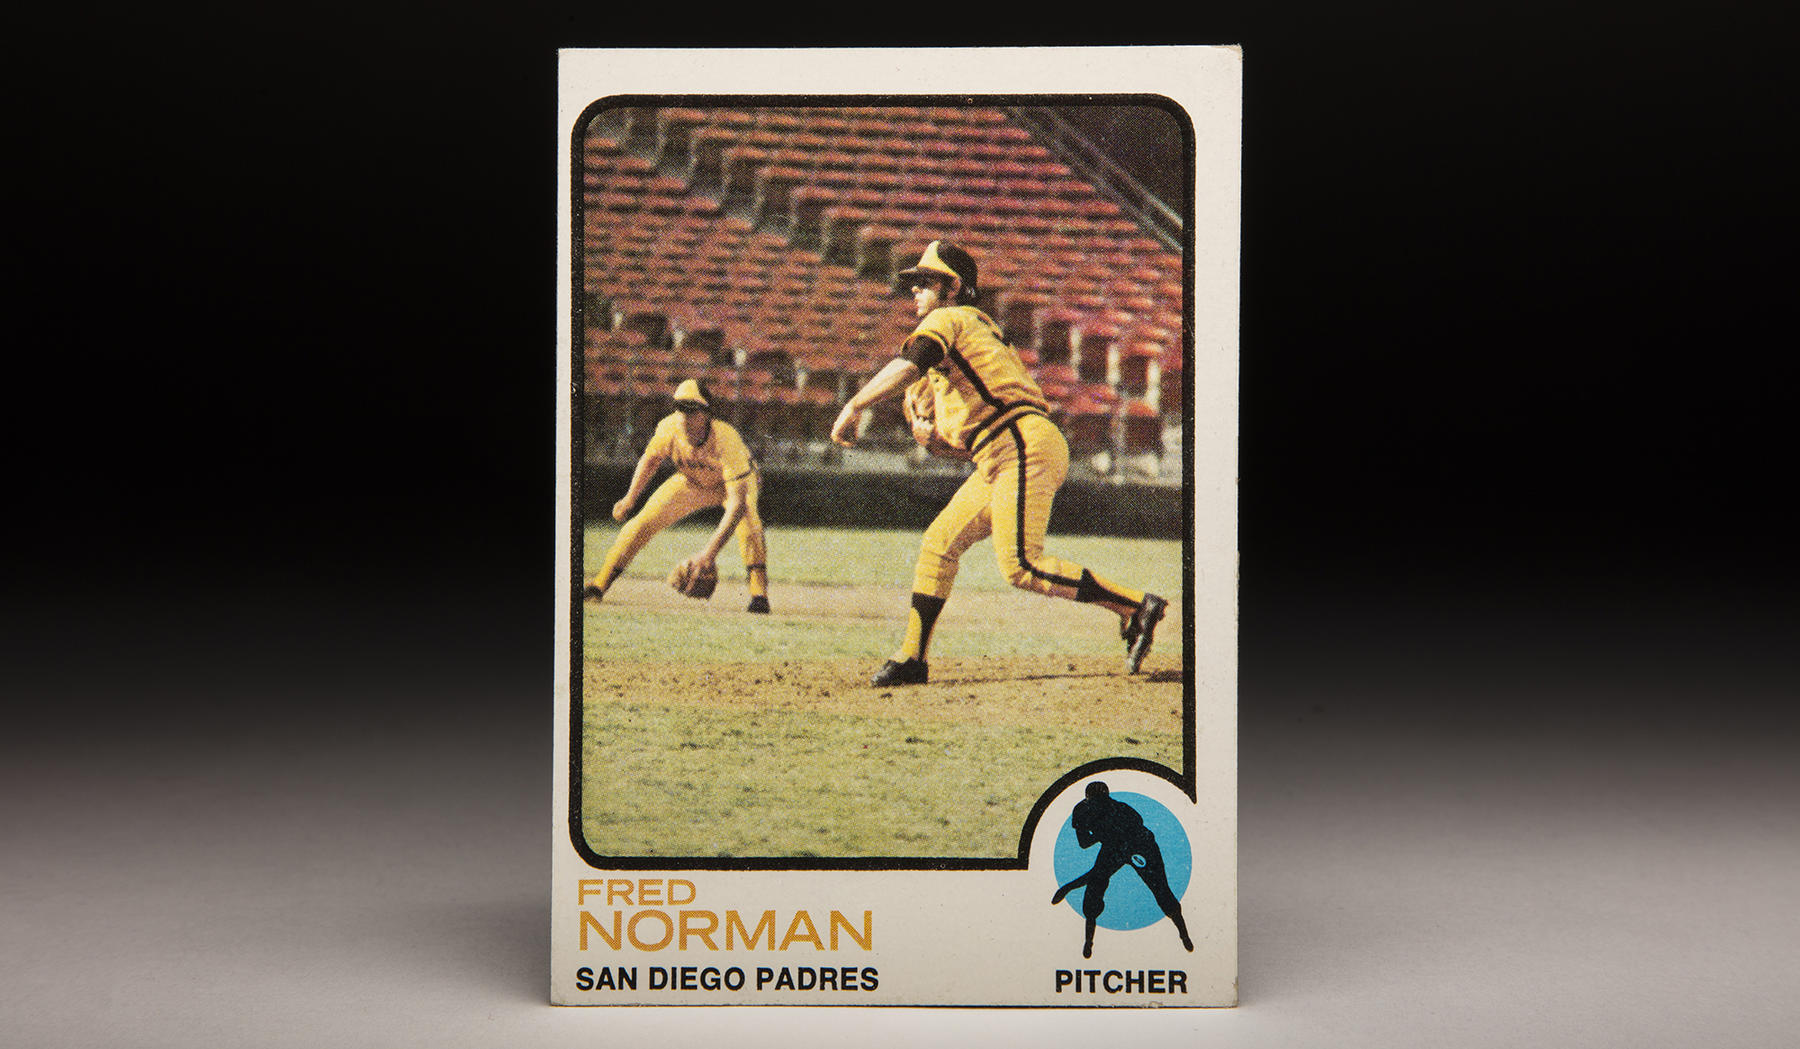 Fred Norman pitched for the Padres from 1971-73 before being traded to the Reds, where he enjoyed his greatest success. He is shown here on a 1973 Topps card. (Milo Stewart Jr./National Baseball Hall of Fame and Museum)